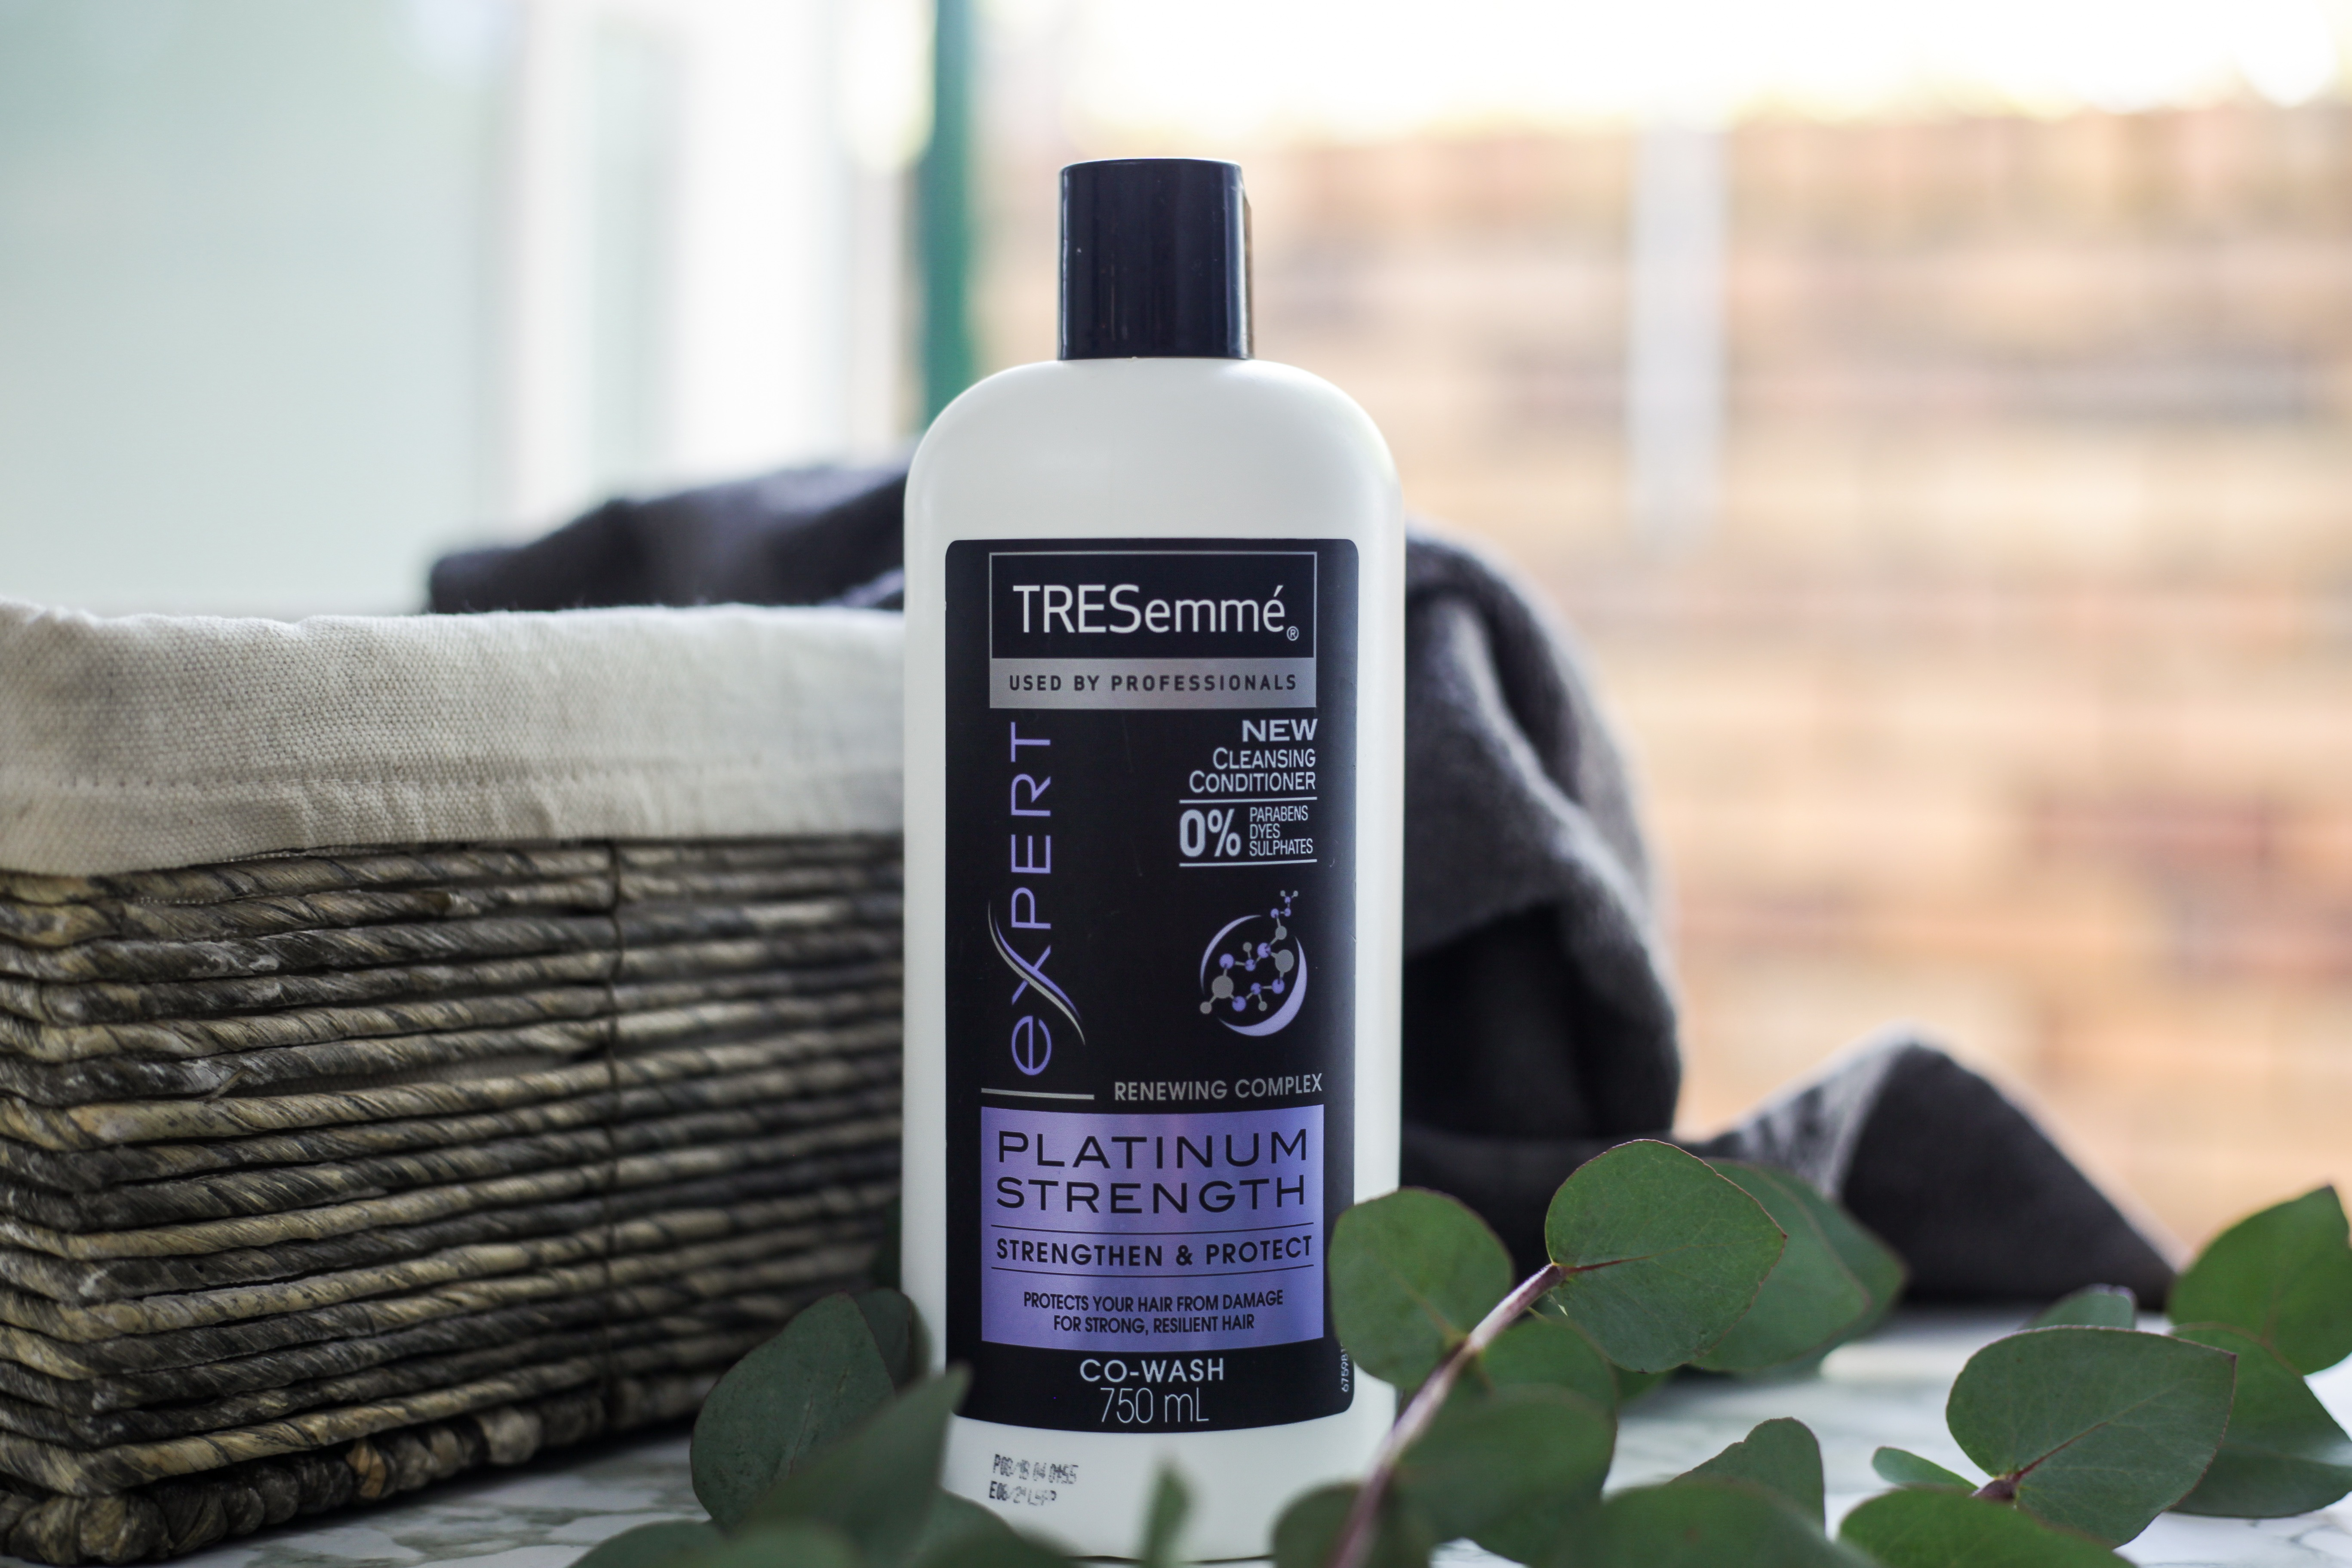 9lives-TRESemmé Platinum Strength Co-Wash Shampoo